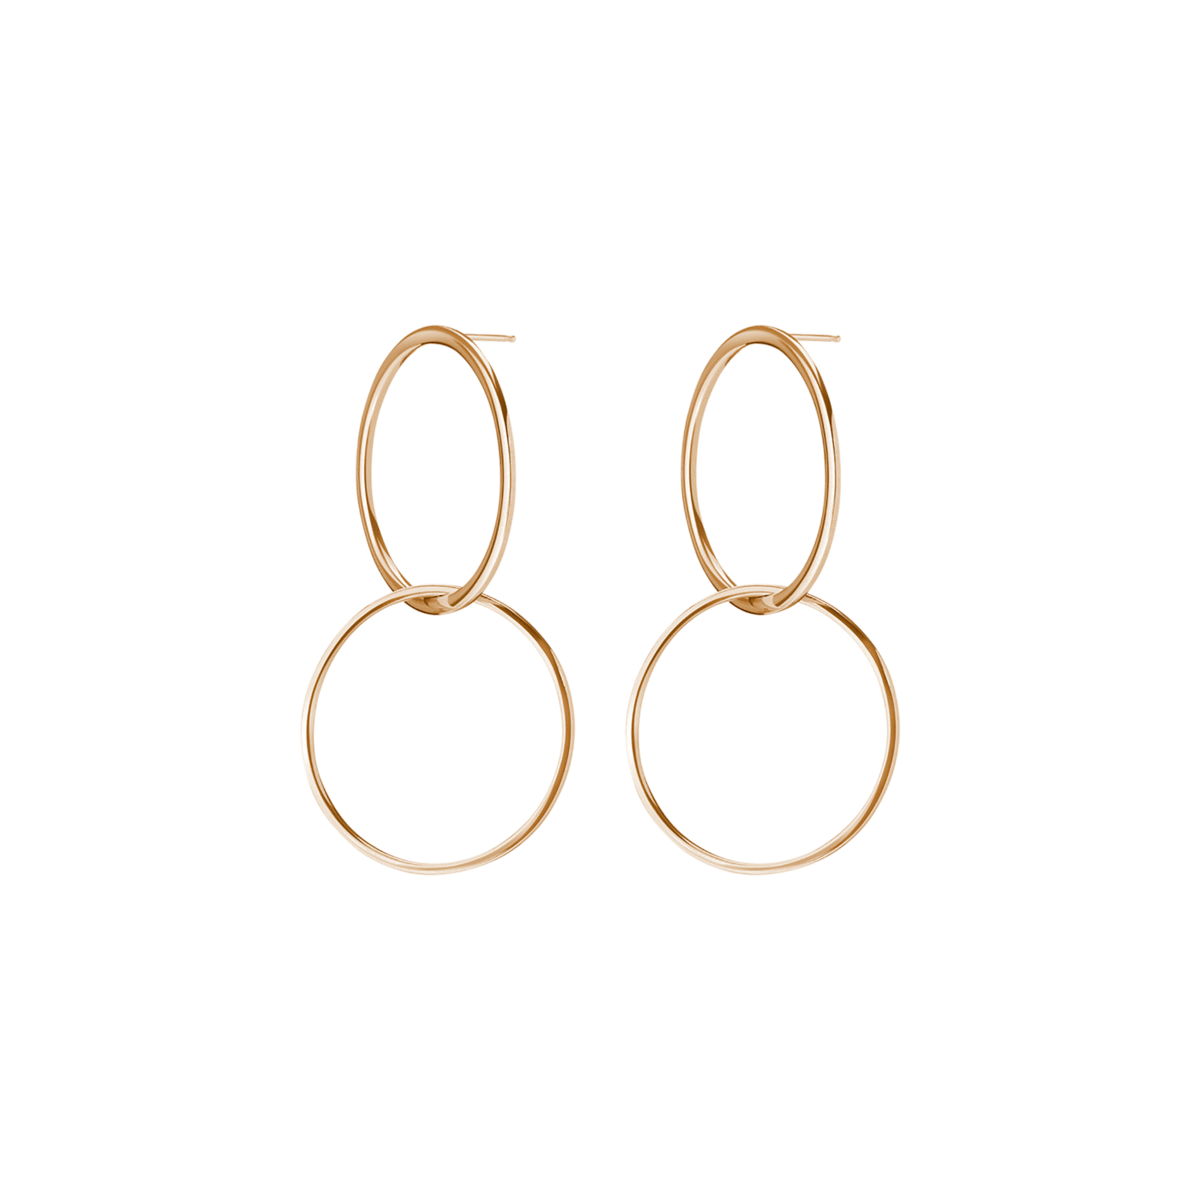 sustainable gold jewelry